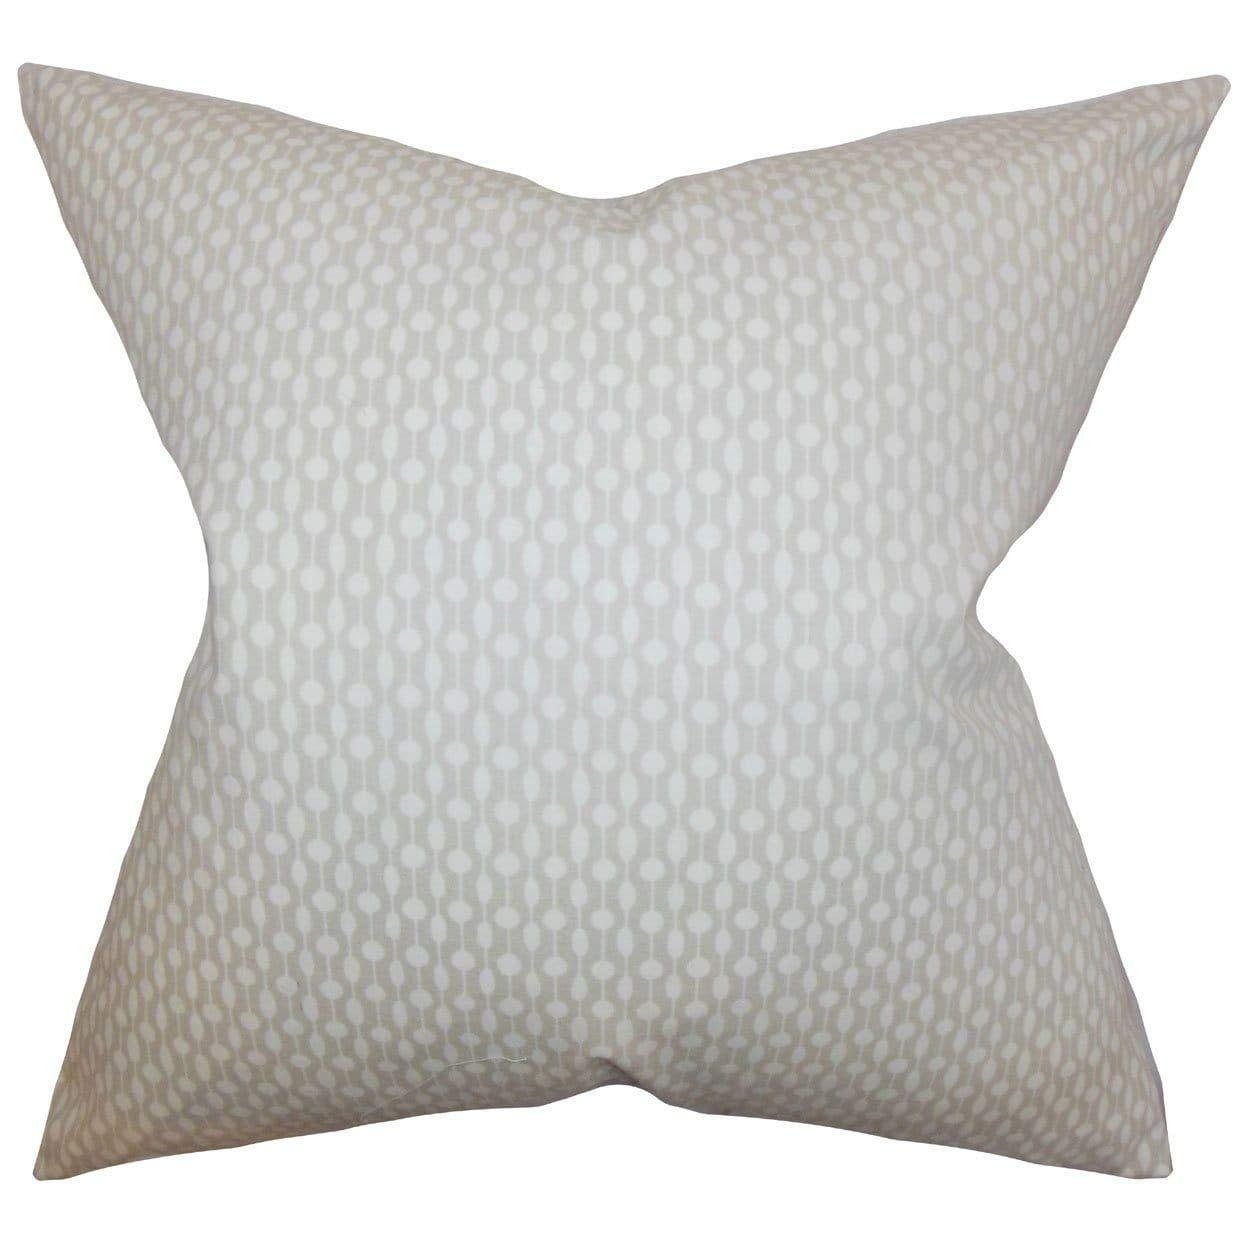 The Pillow Collection Orit Geometric Bedding Sham Oyster, King/20'' x 36''